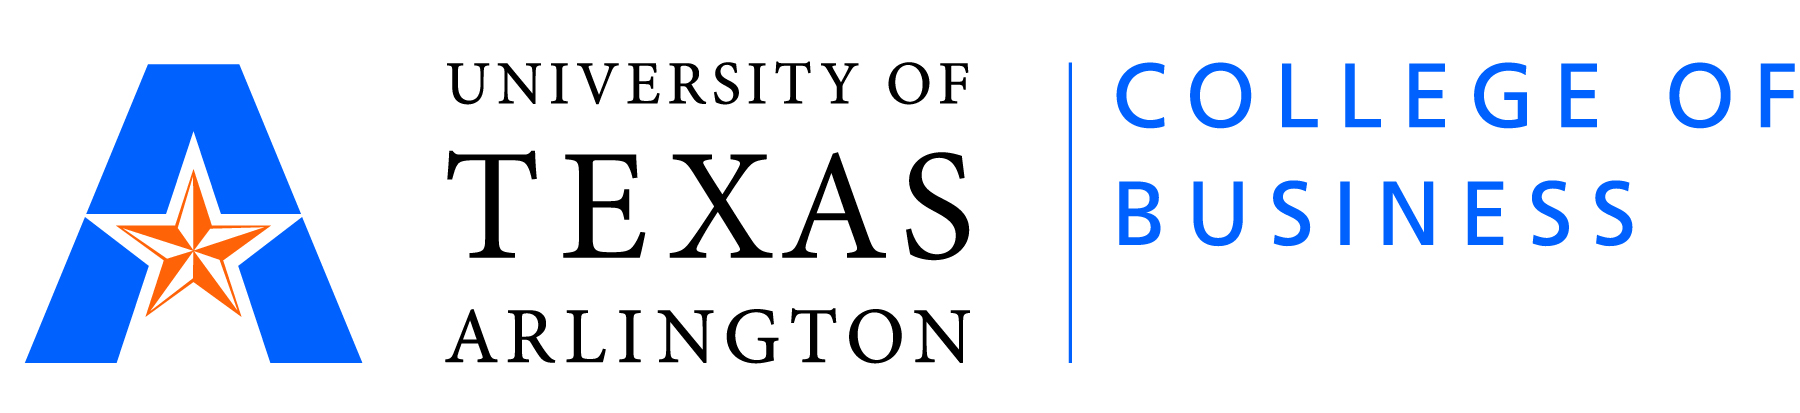 UTA-college of business outline crop.jpg